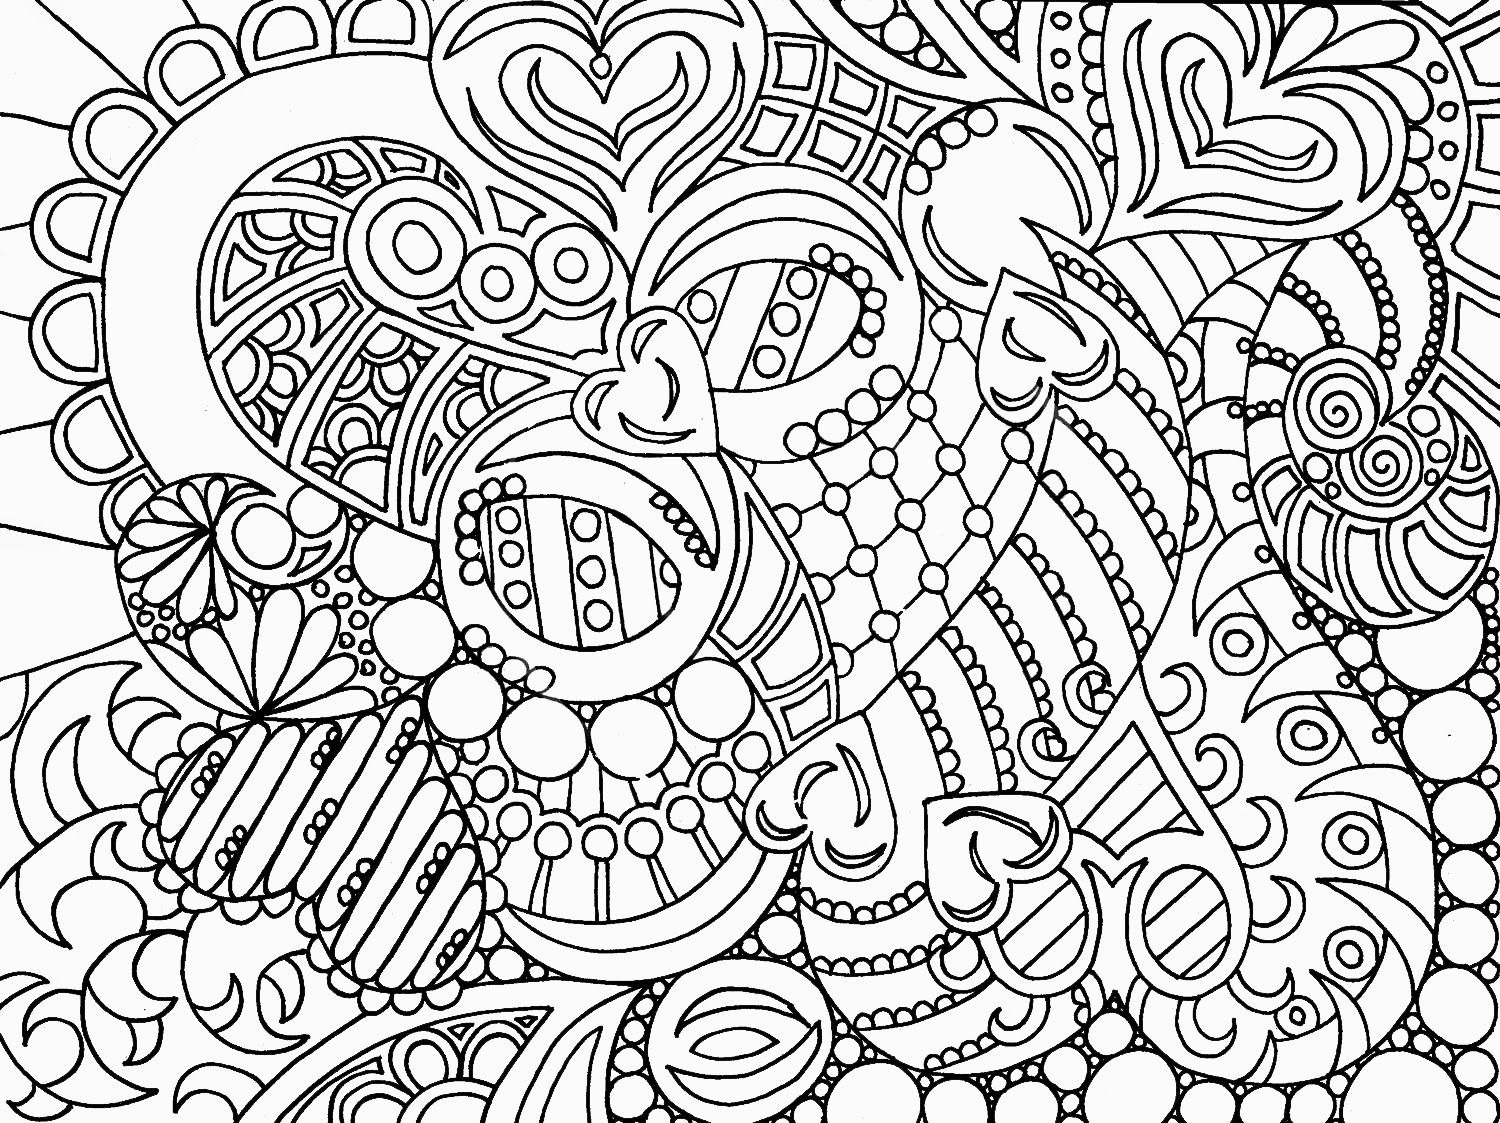 Pages to color for adults - Abstract Coloring Pages You Can Get Abstract Art Coloring Pages For Adult Here